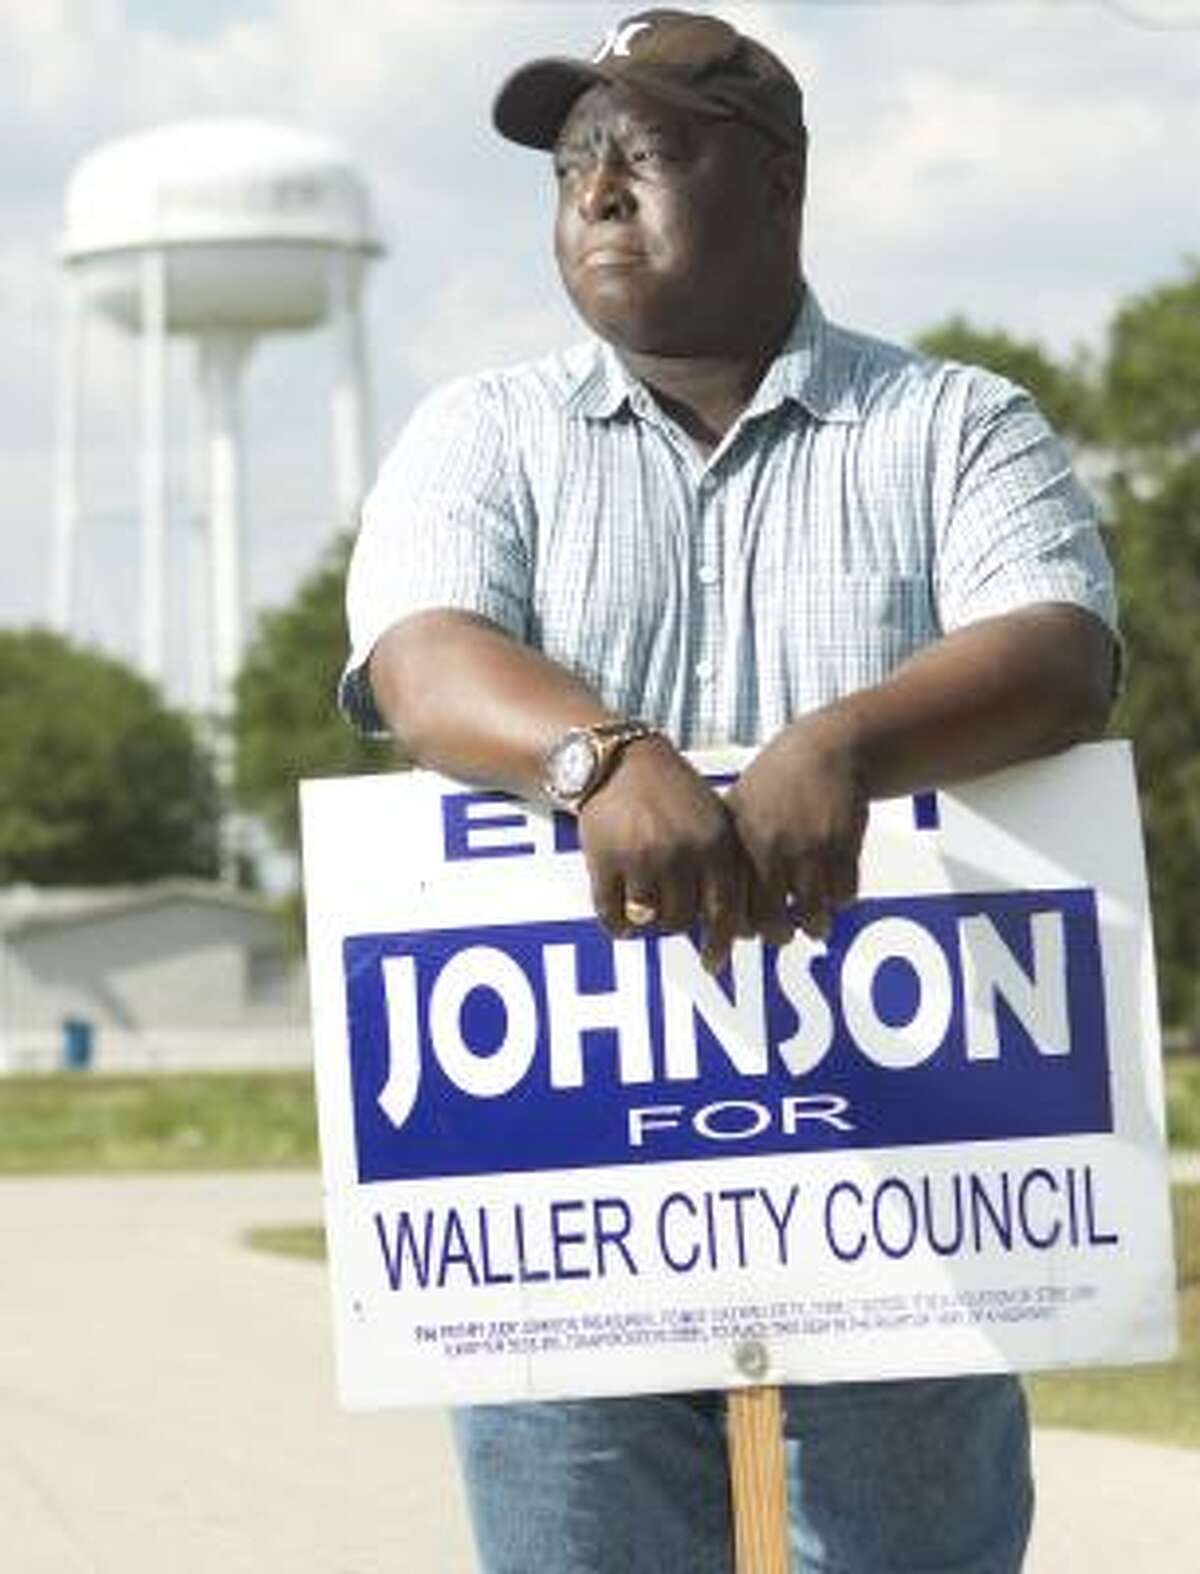 Sid Johnson was defeated in May but says hundreds of residents said they were deprived of their votes. He and the mayor have asked for a federal probe.